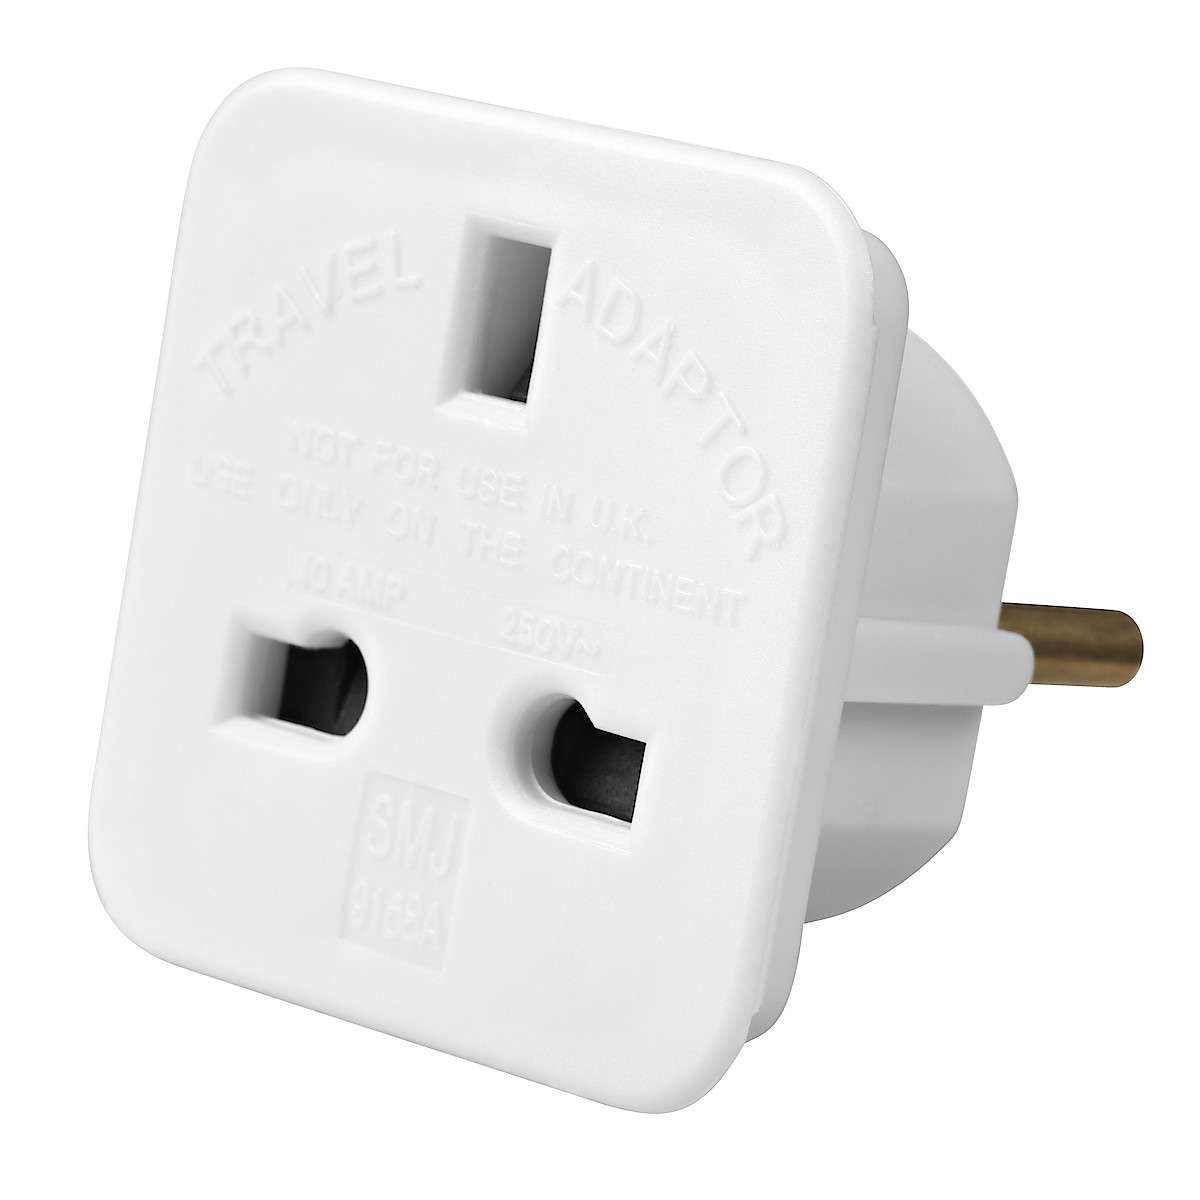 Worldwide Adaptor